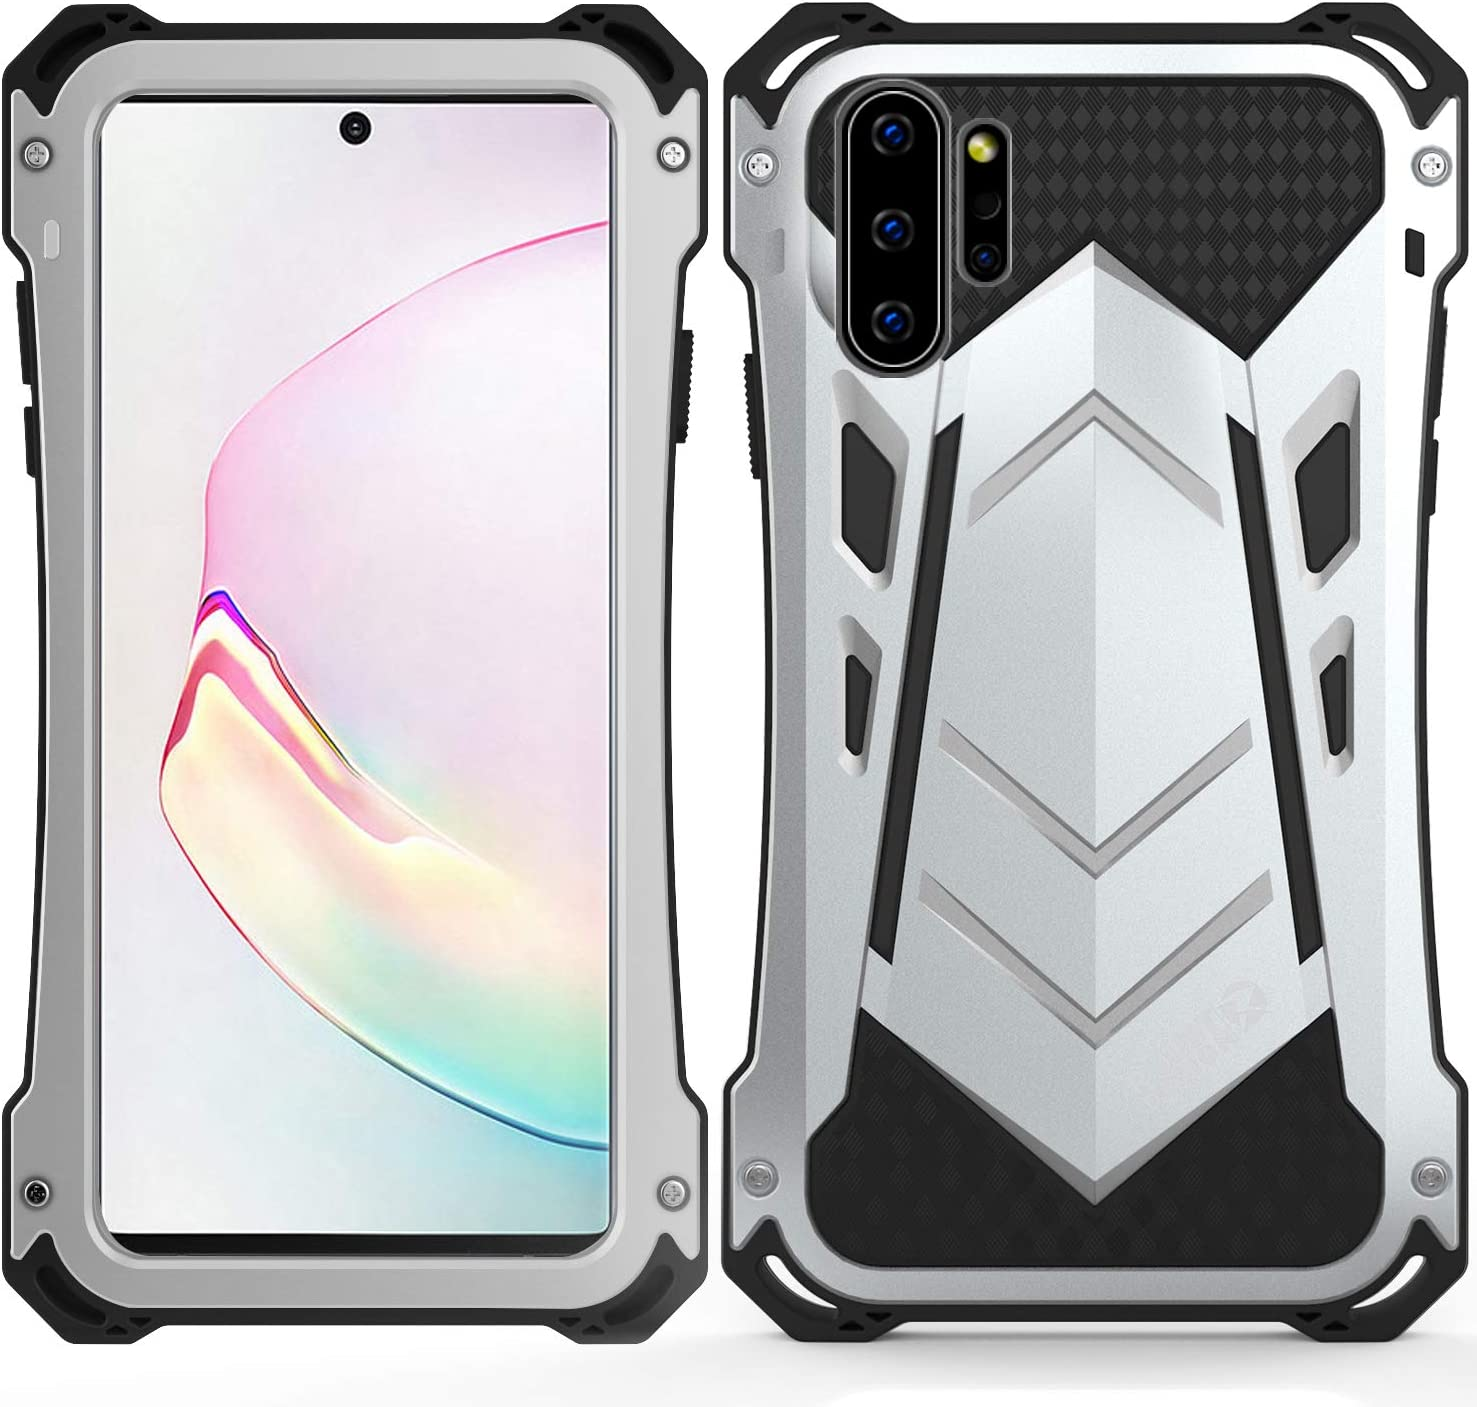 Samsung Note 10 plus Metal Military Case,HATA Note 10 plus Metal Bumper Silicone Heavy Duty Case Hybrid Rugged Armor Sturdy Shockproof Full body Defender Outdoor cover for Samsung Note 10 plus(Silver)